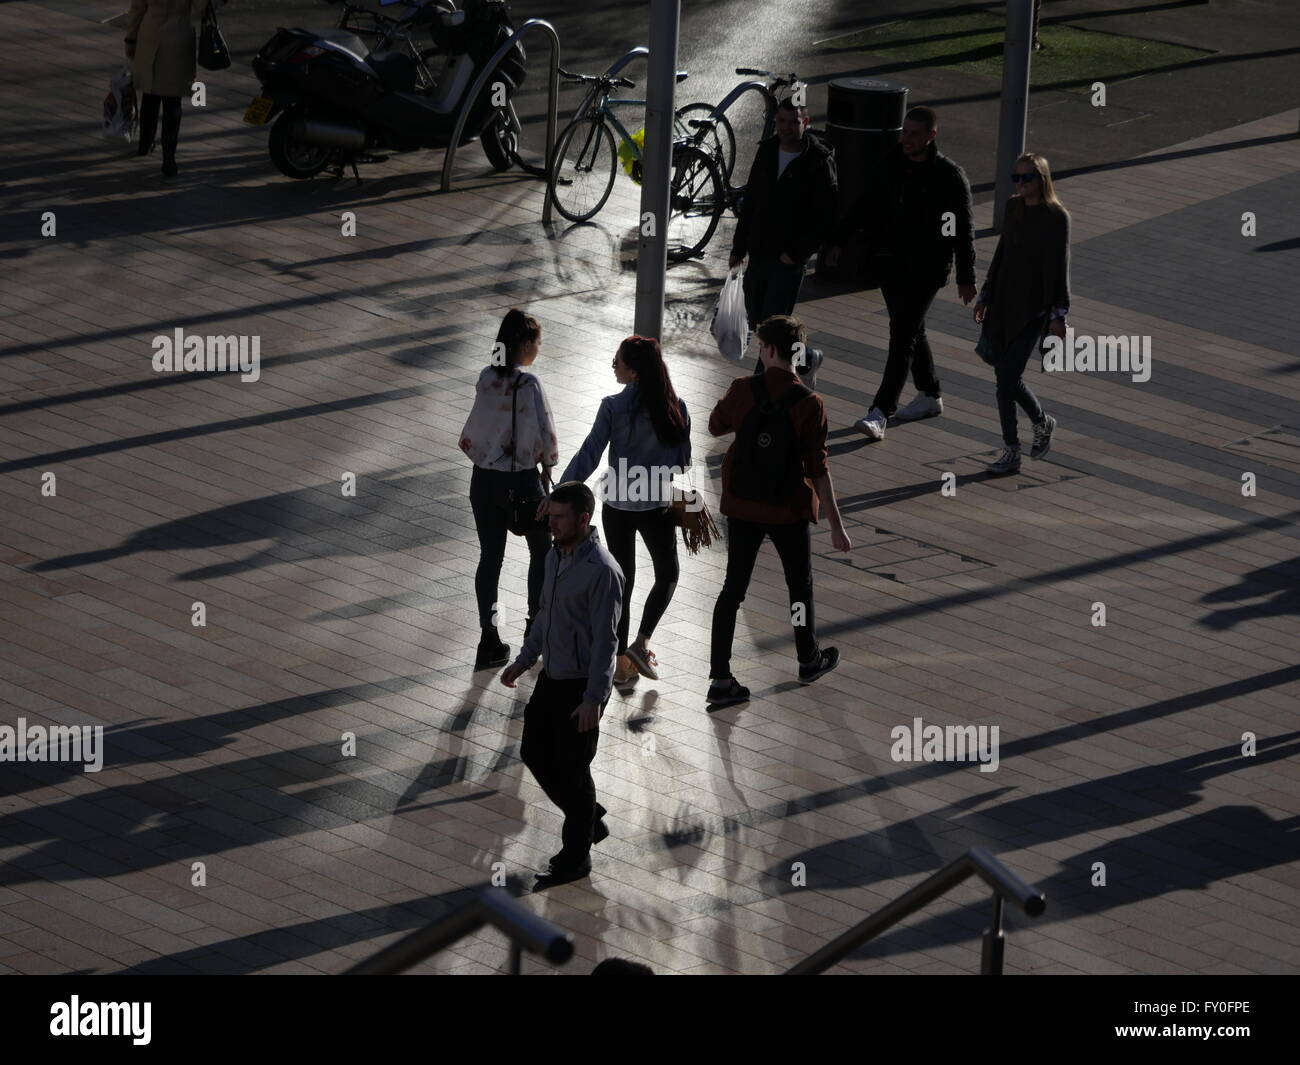 Shopping in Liverpool One England UK - Stock Image